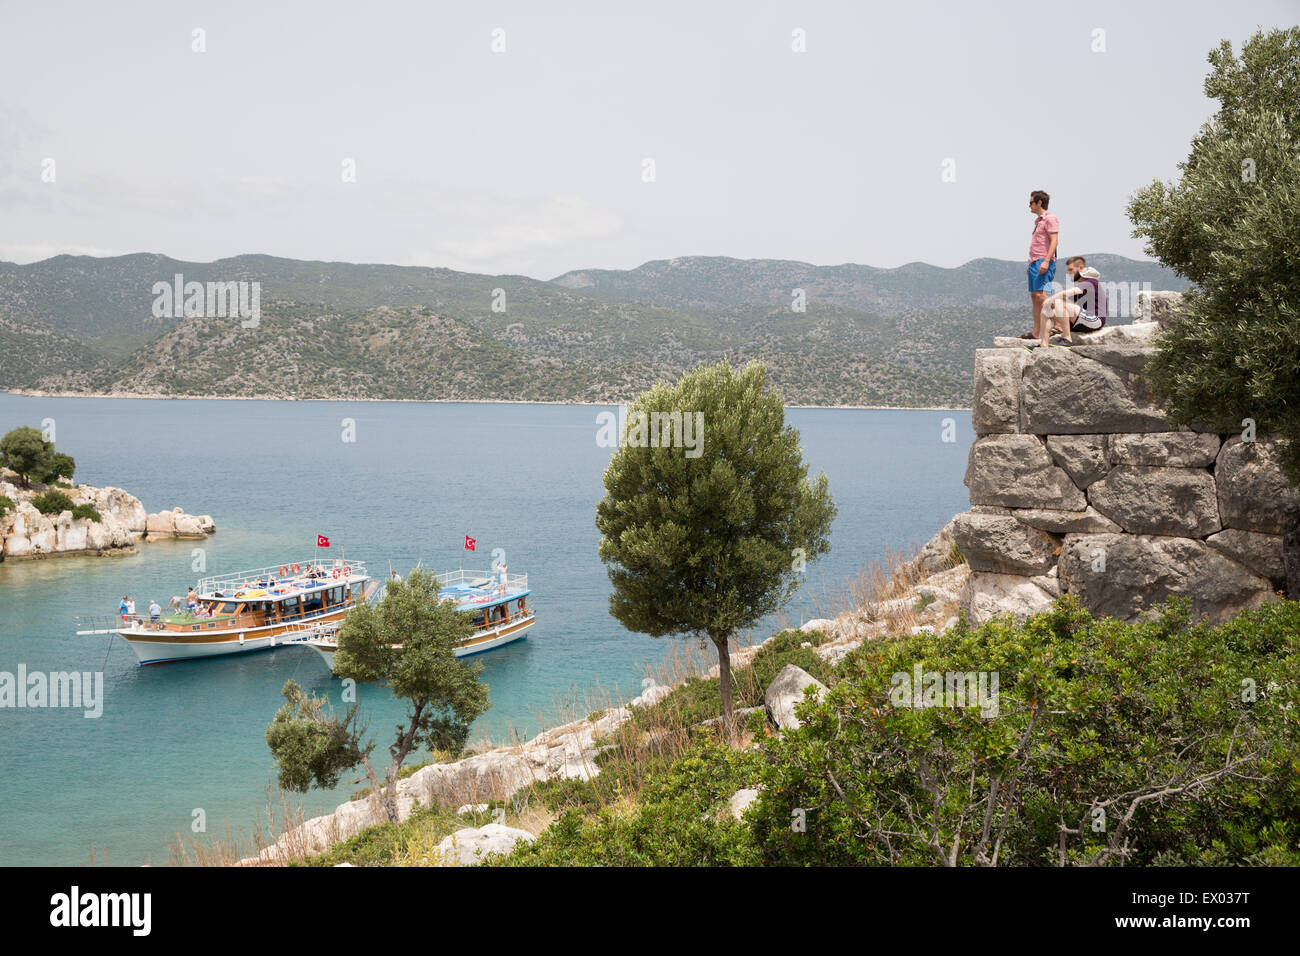 Two men looking out at coast on the Lycian way, Turkey - Stock Image